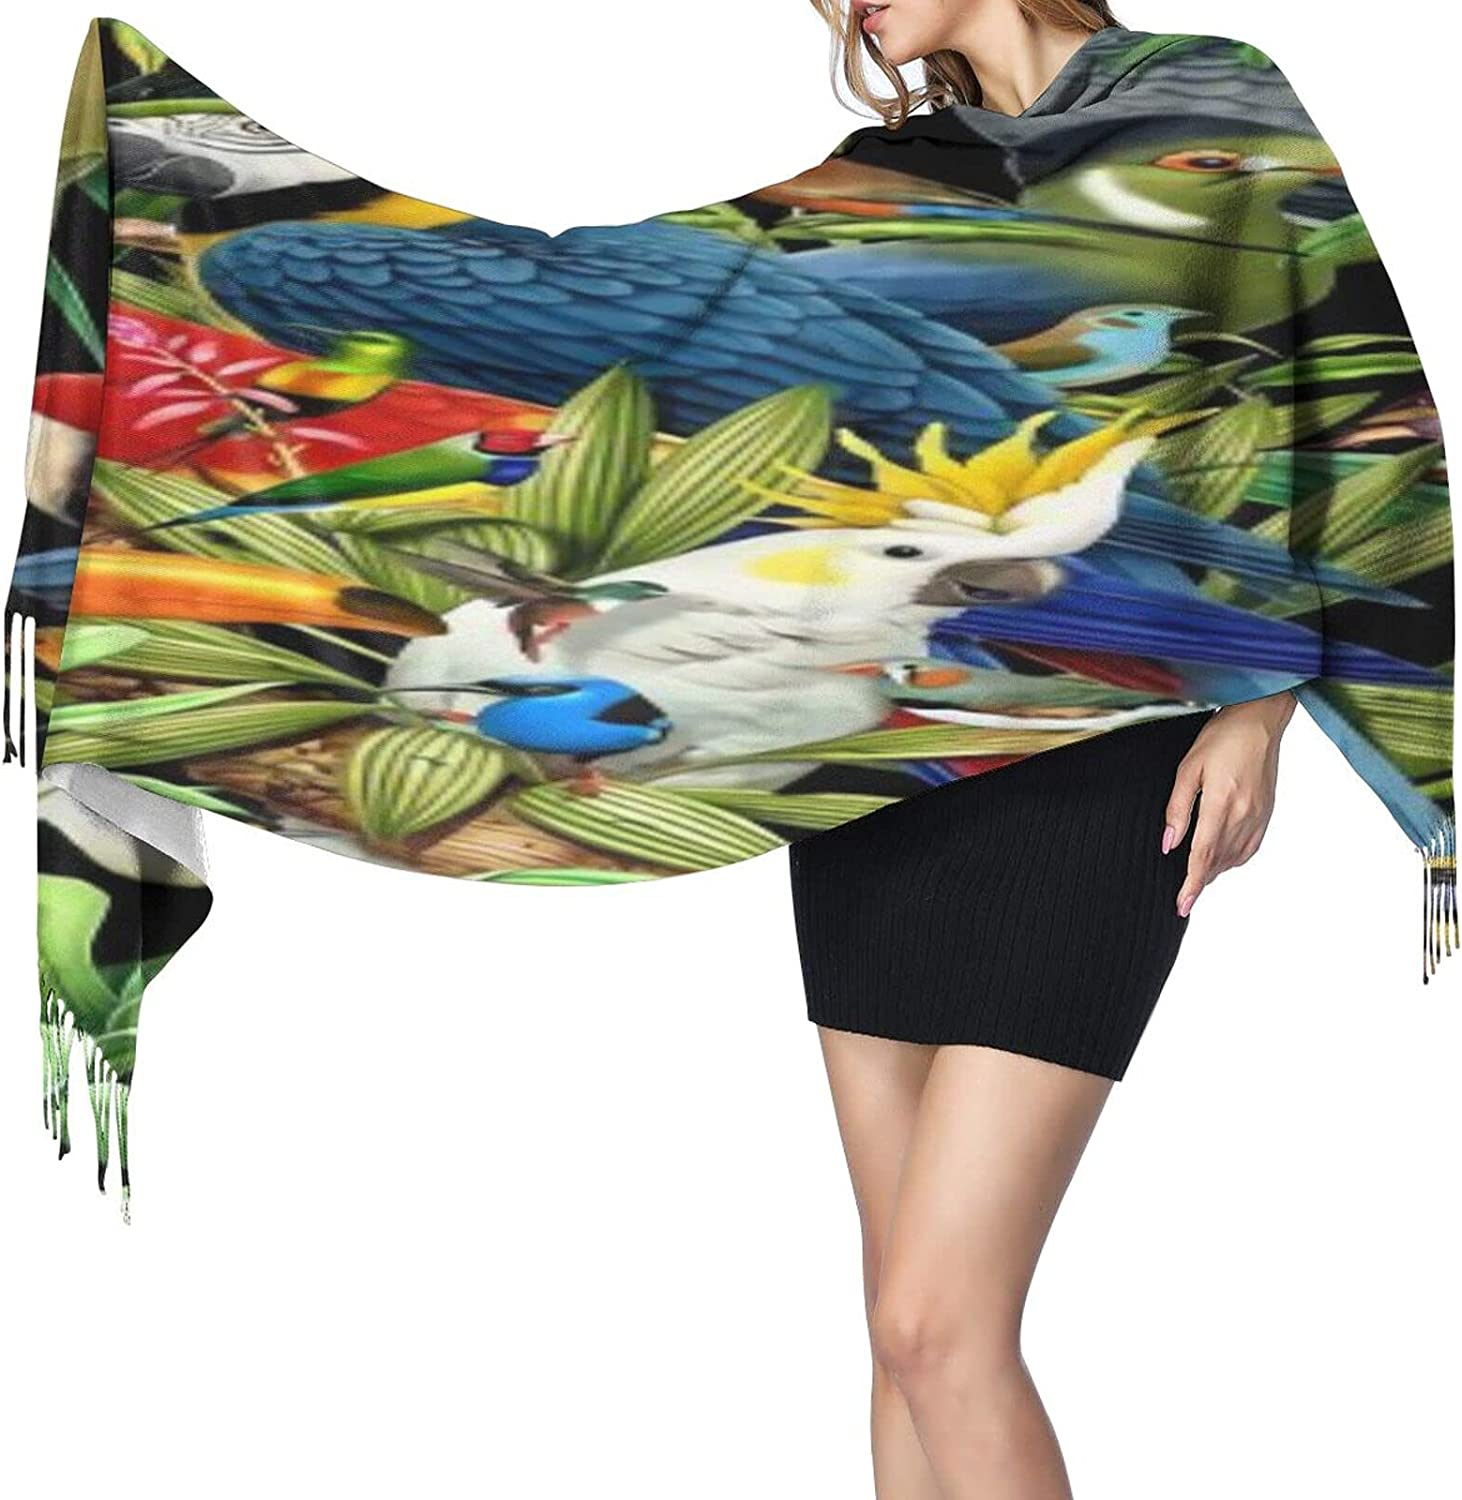 Cashmere fringed scarf Parrot kingdom winter extra large scarf